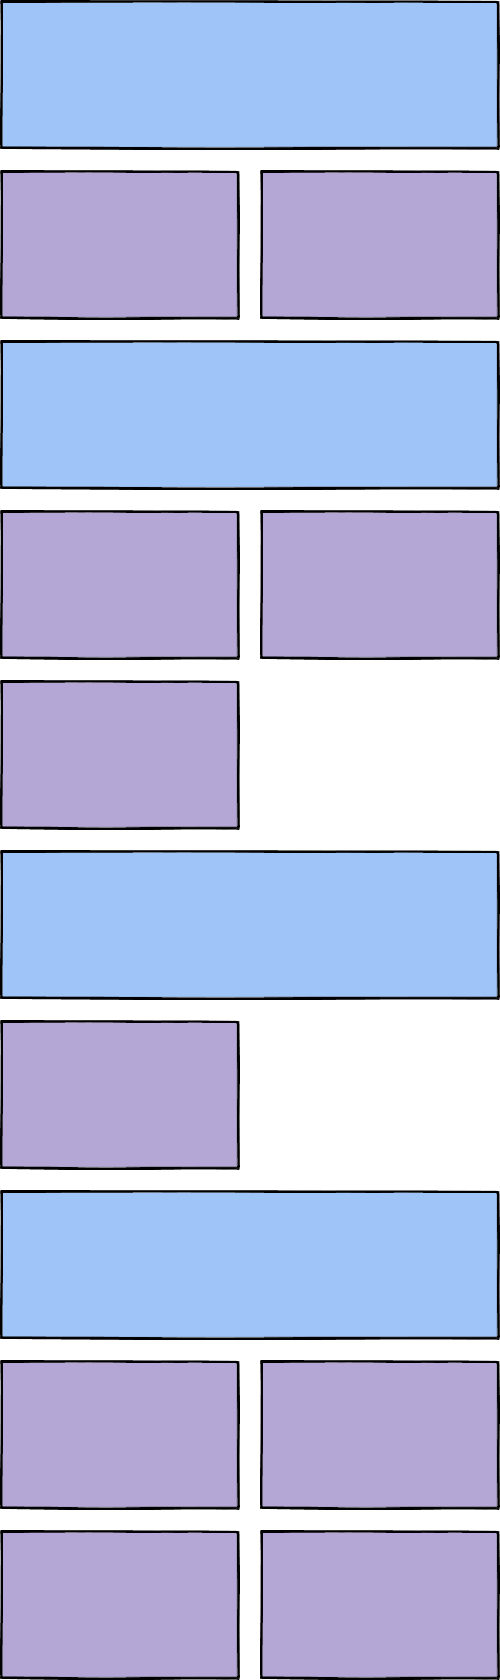 Illustration showing a list layout with hero items that are wider than their siblings that do not need as much prominence.